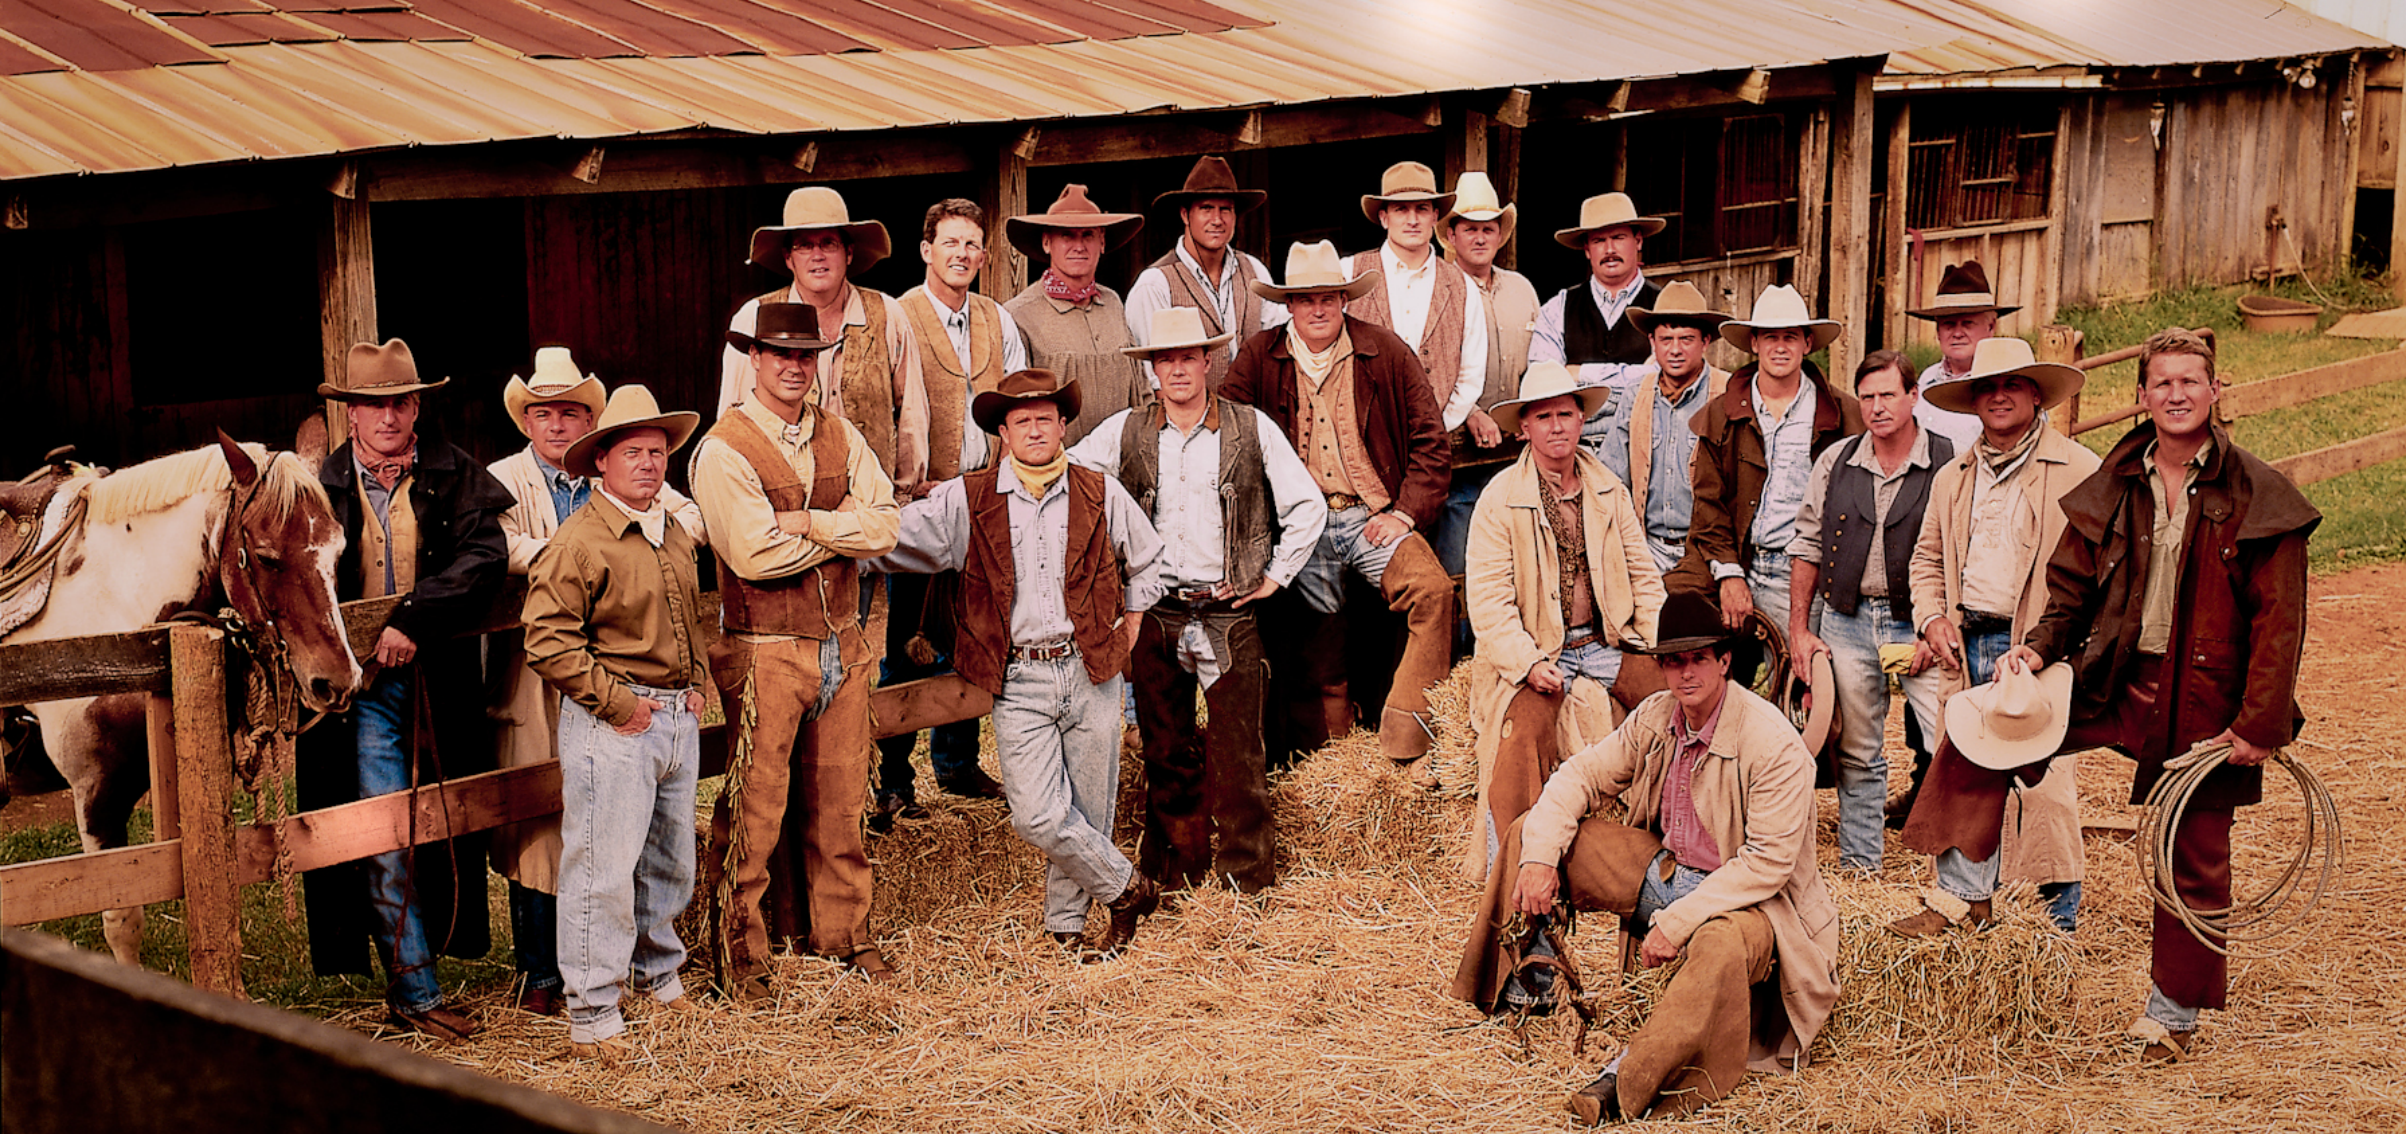 Group of cowboys. Color photograph by Donald Chambers